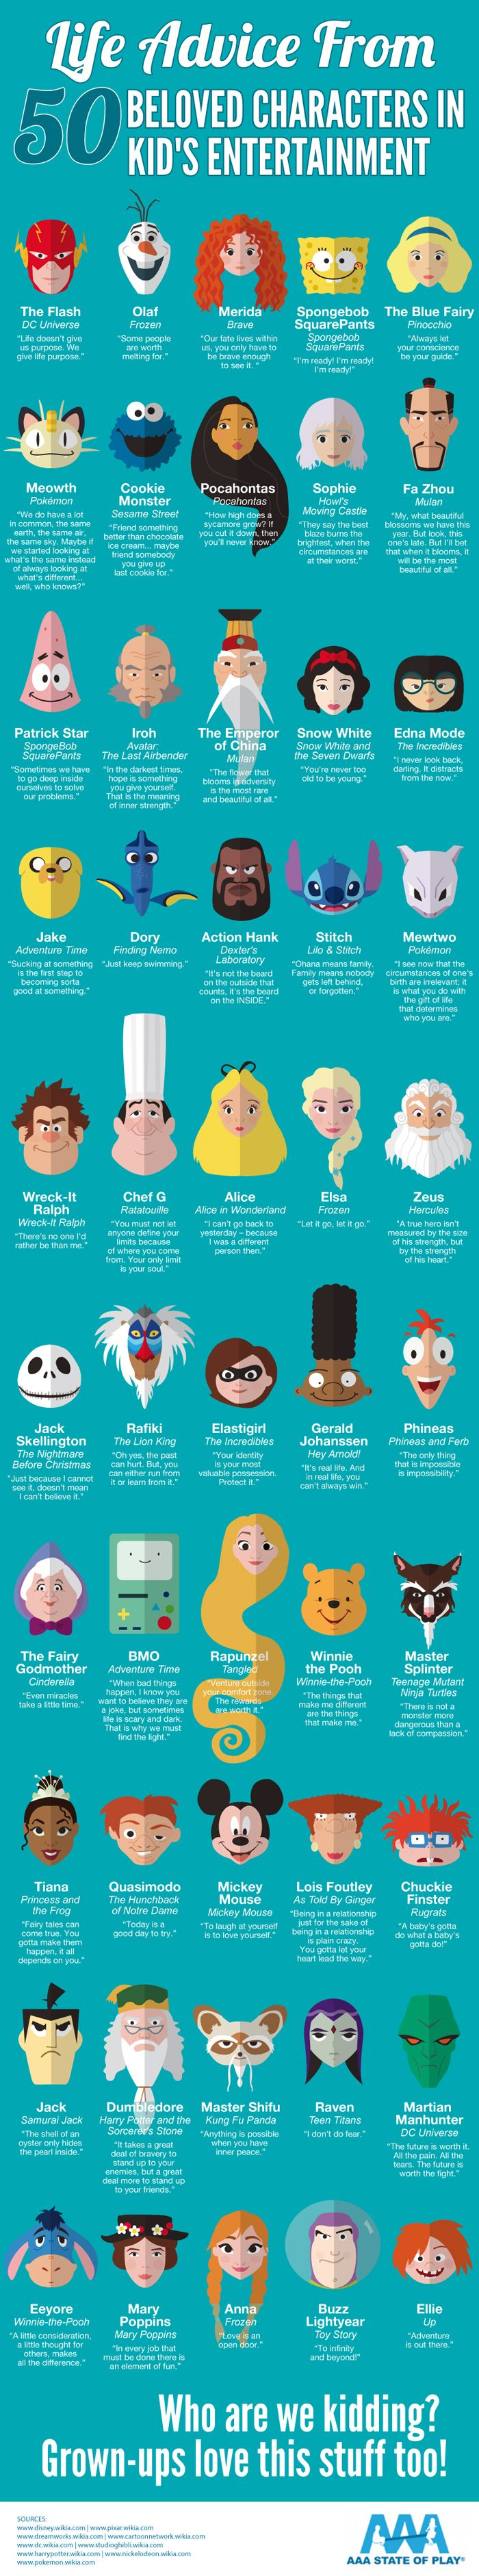 Life Advice from 50 Beloved Characters in Kid's Entertainment